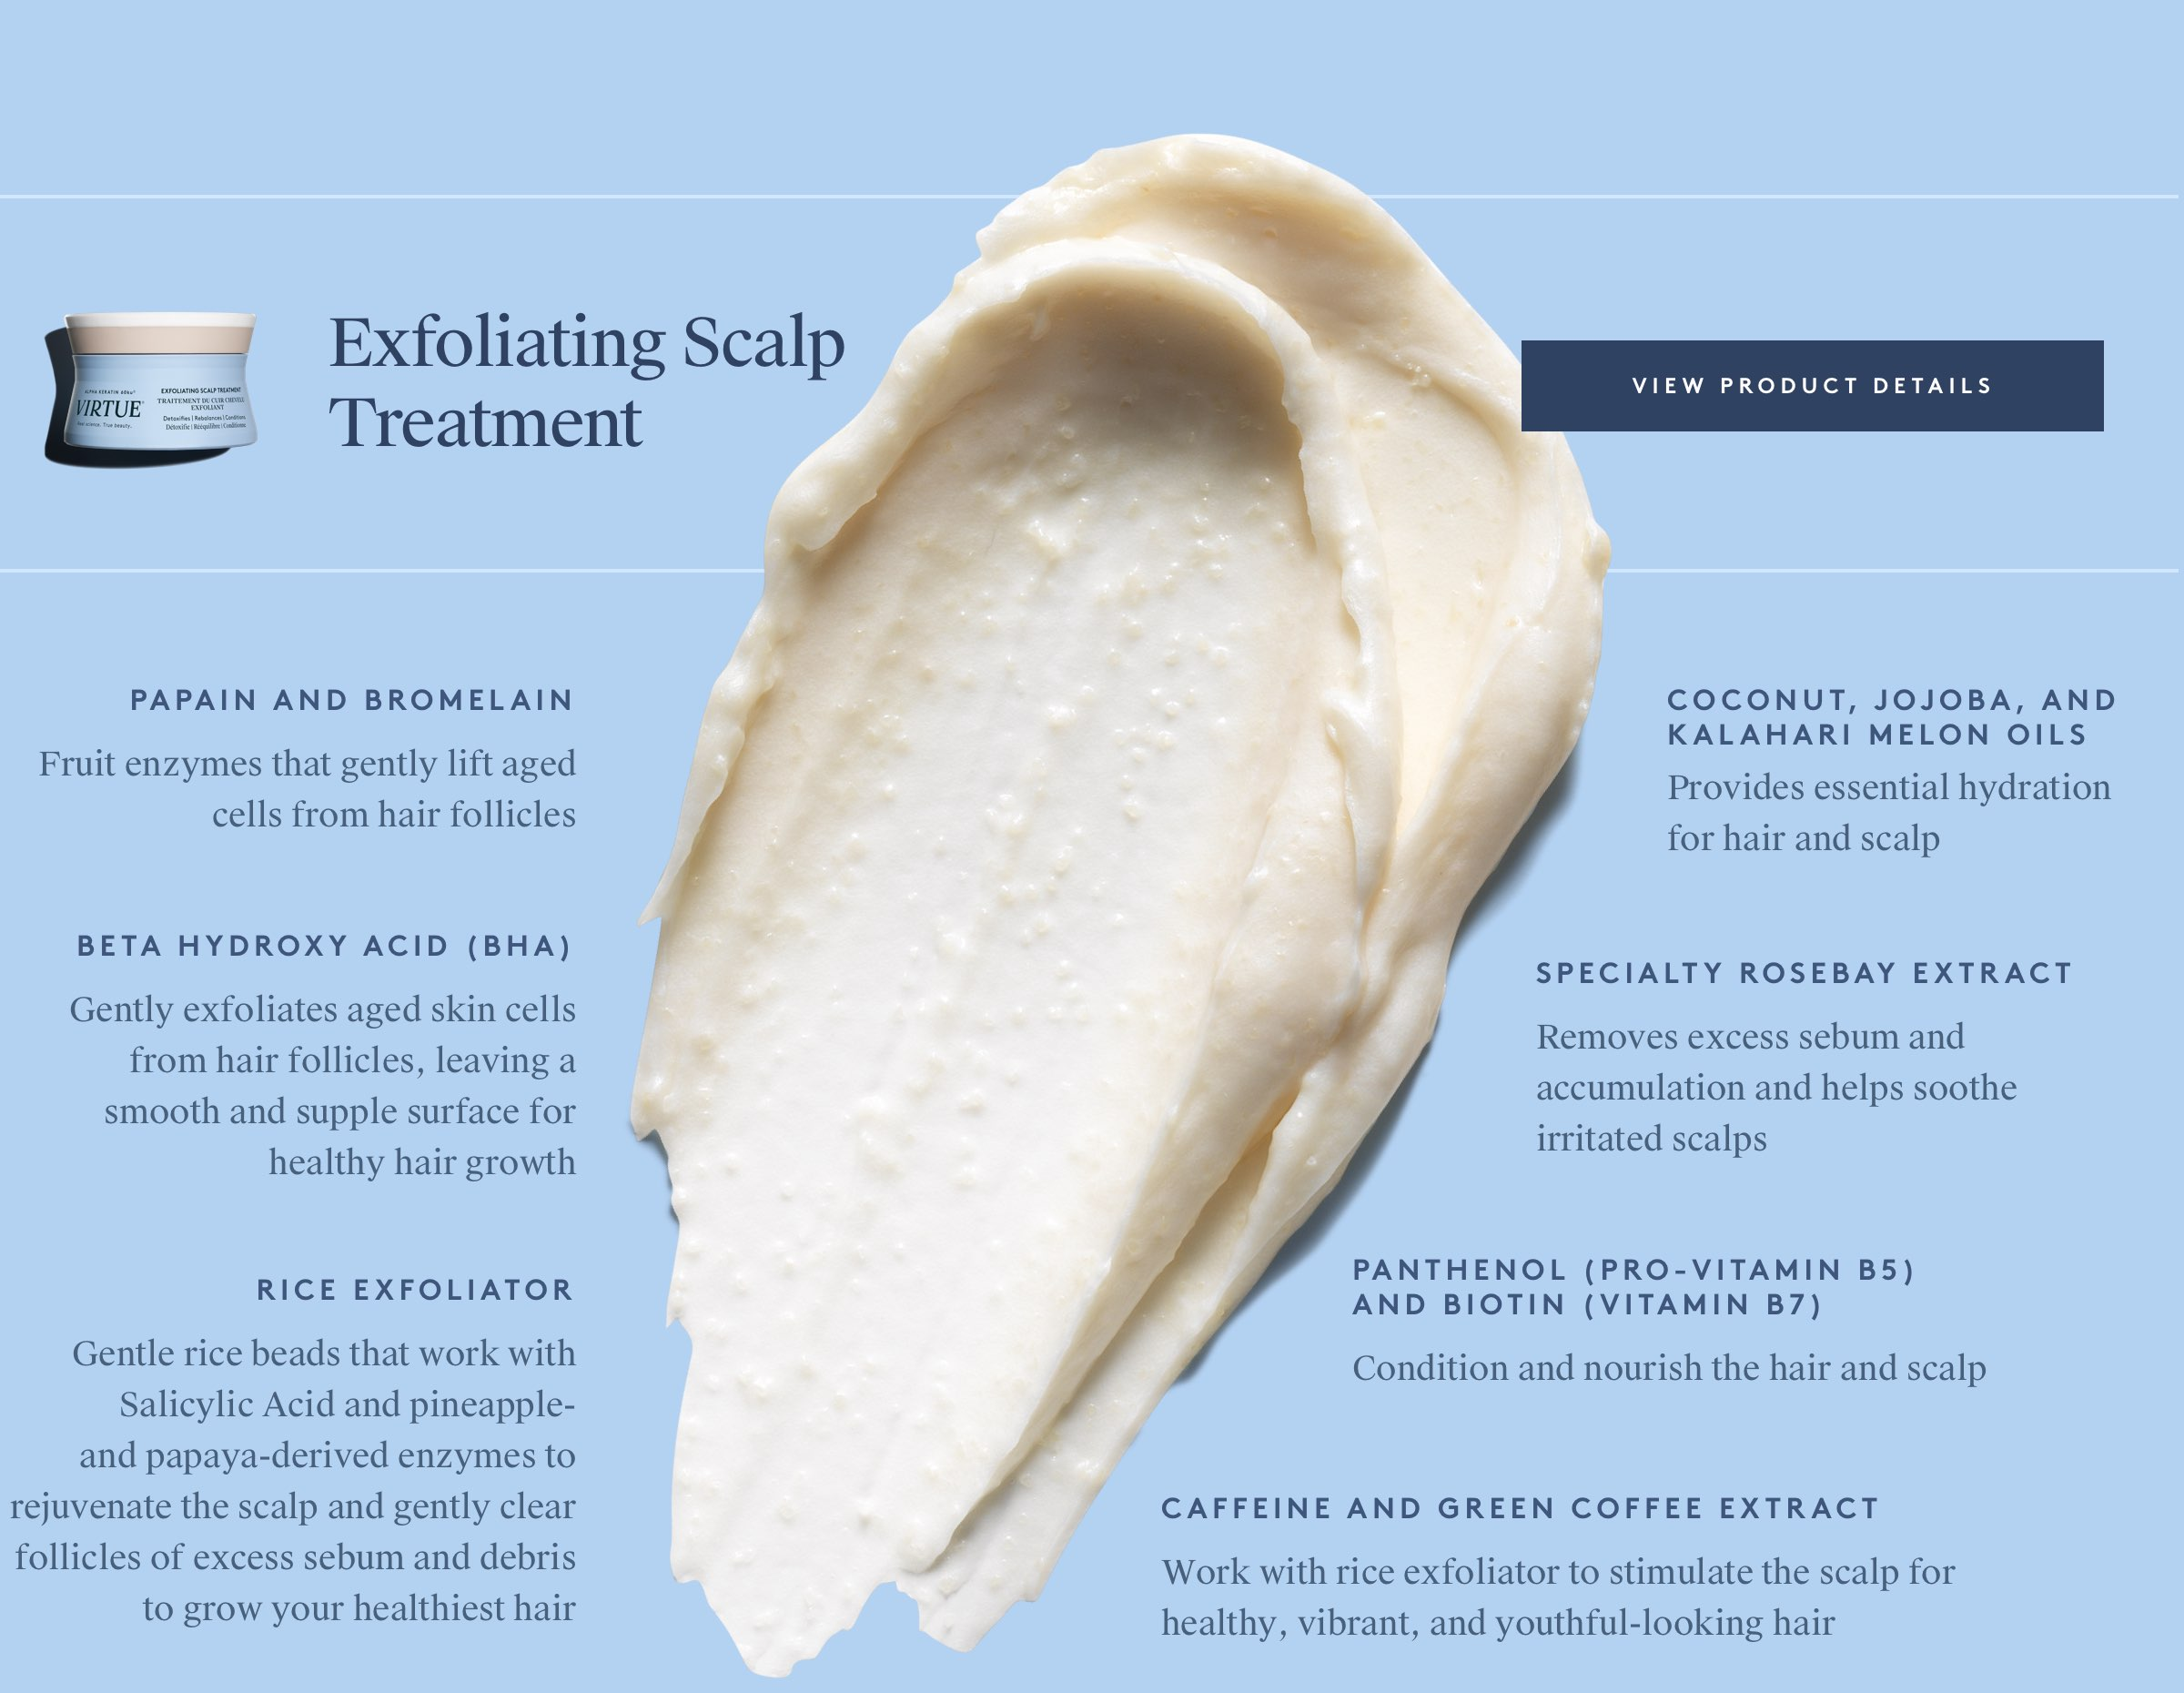 Exfoliating Scalp Treatment Ingredients